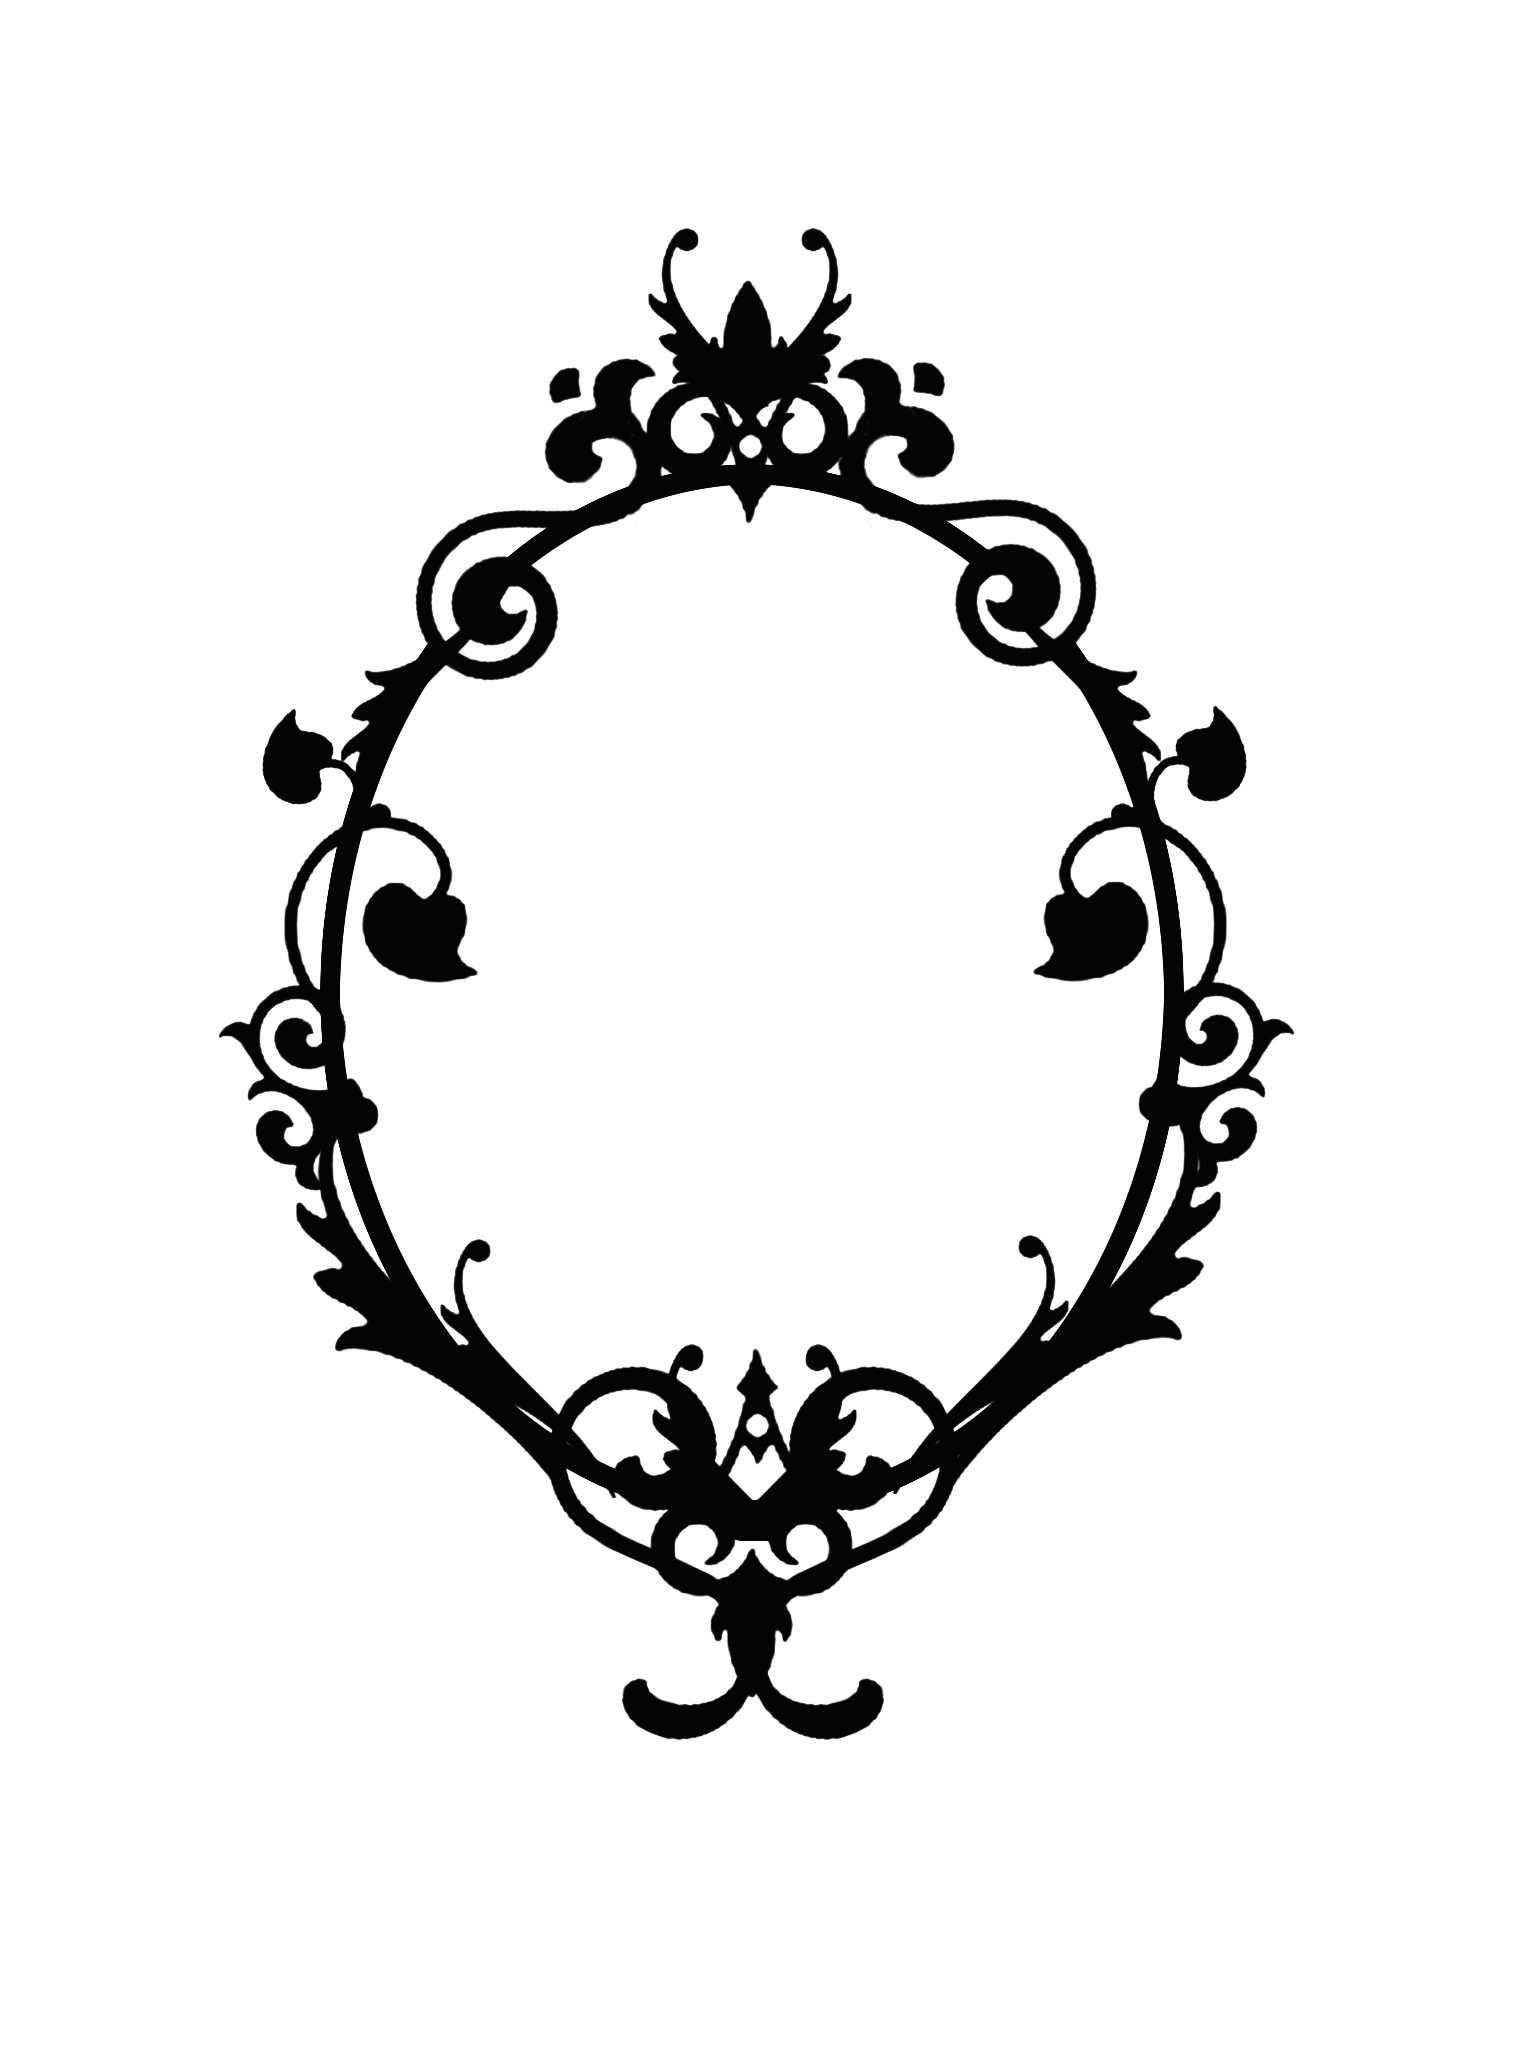 Ornate_Oval_Frame_Cutout_01_by_Tigers_stock.png 1536×2048 pixels ...